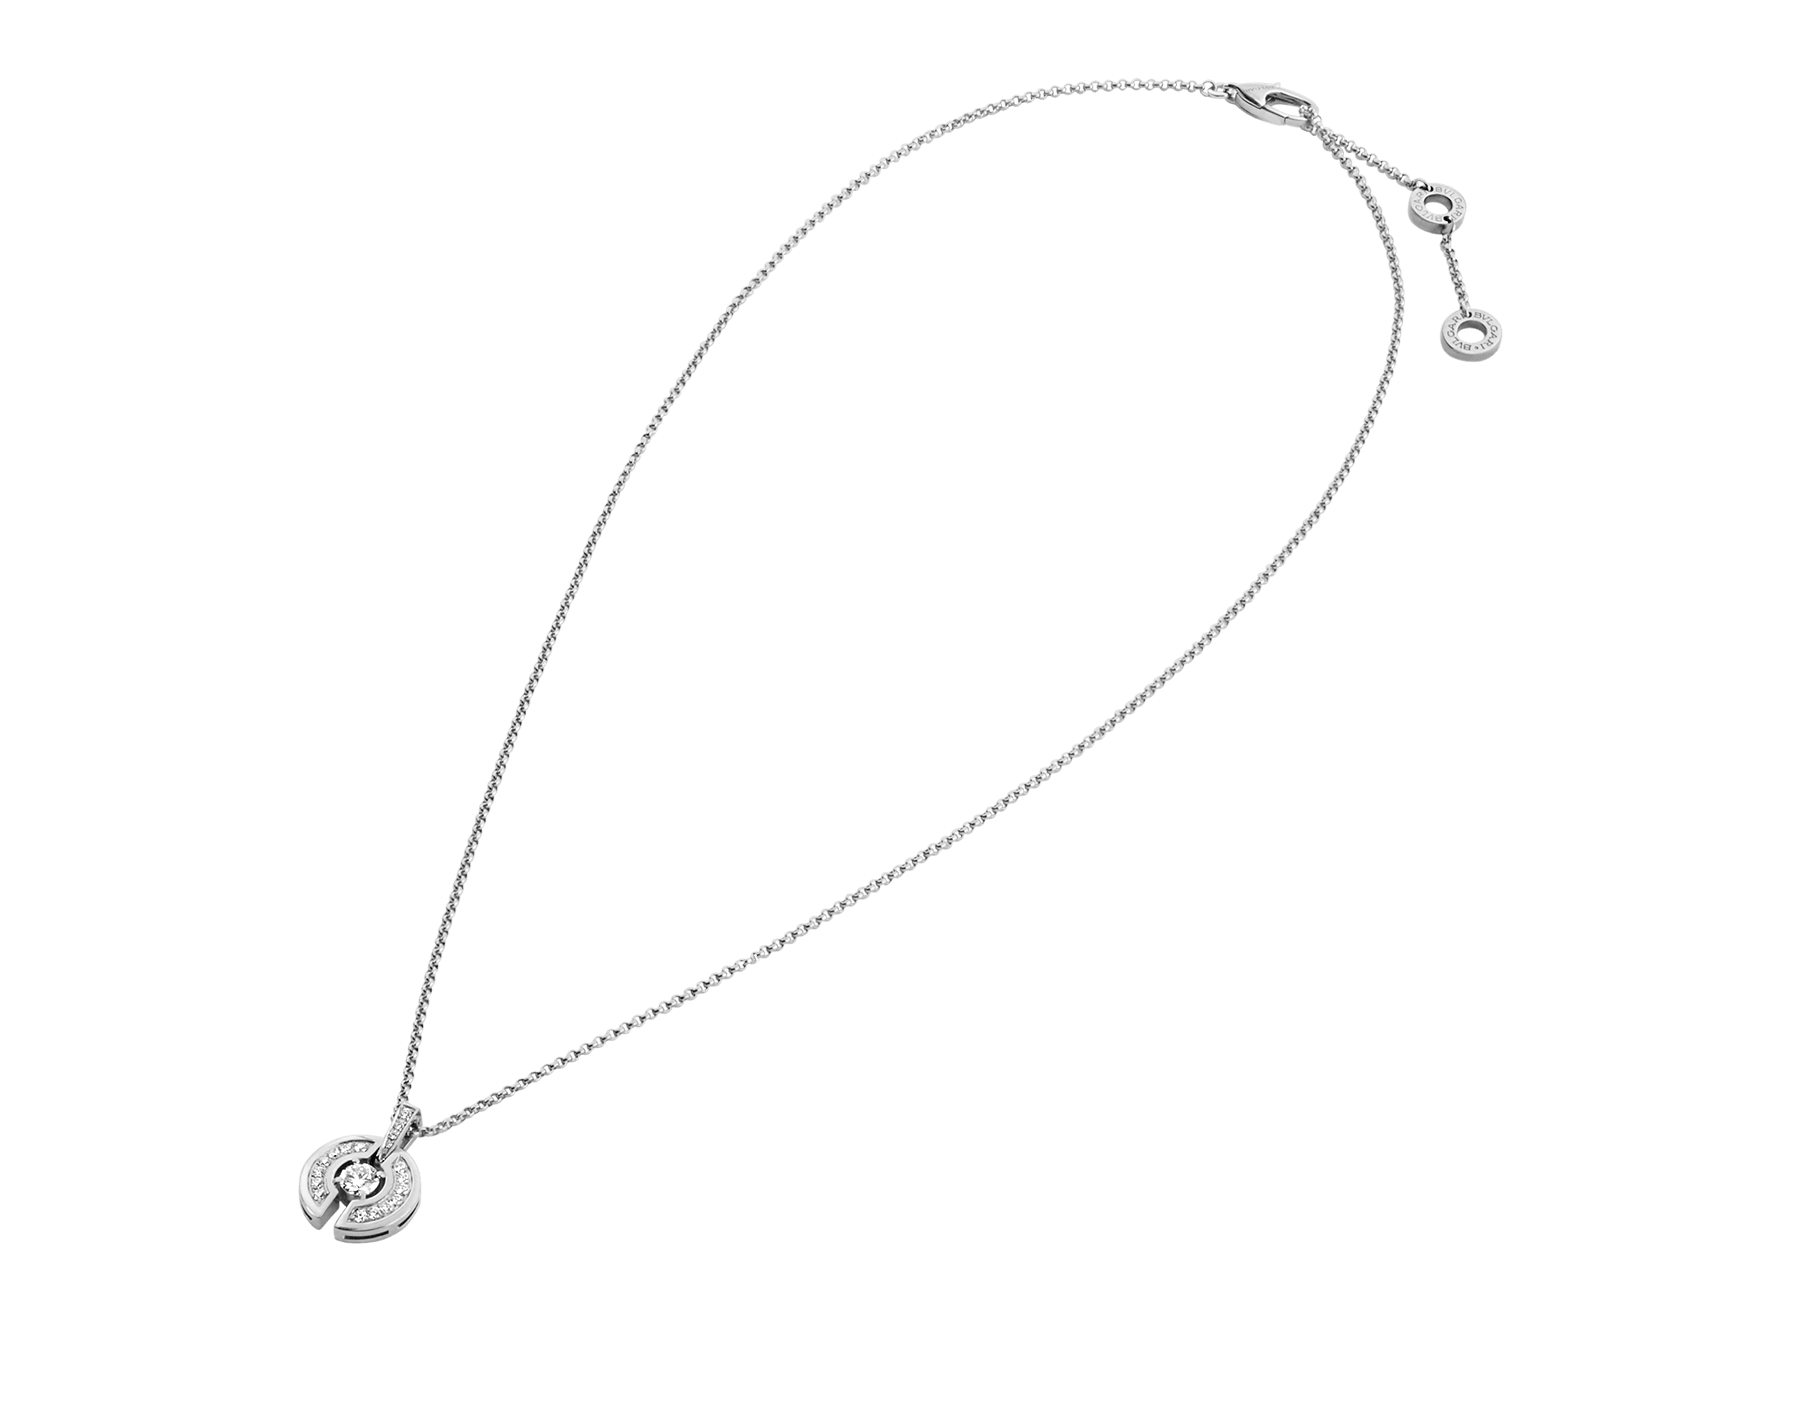 Parentesi necklace with 18 kt white gold chain and pendant, set with a central diamond and pavé diamonds. 354312 image 2